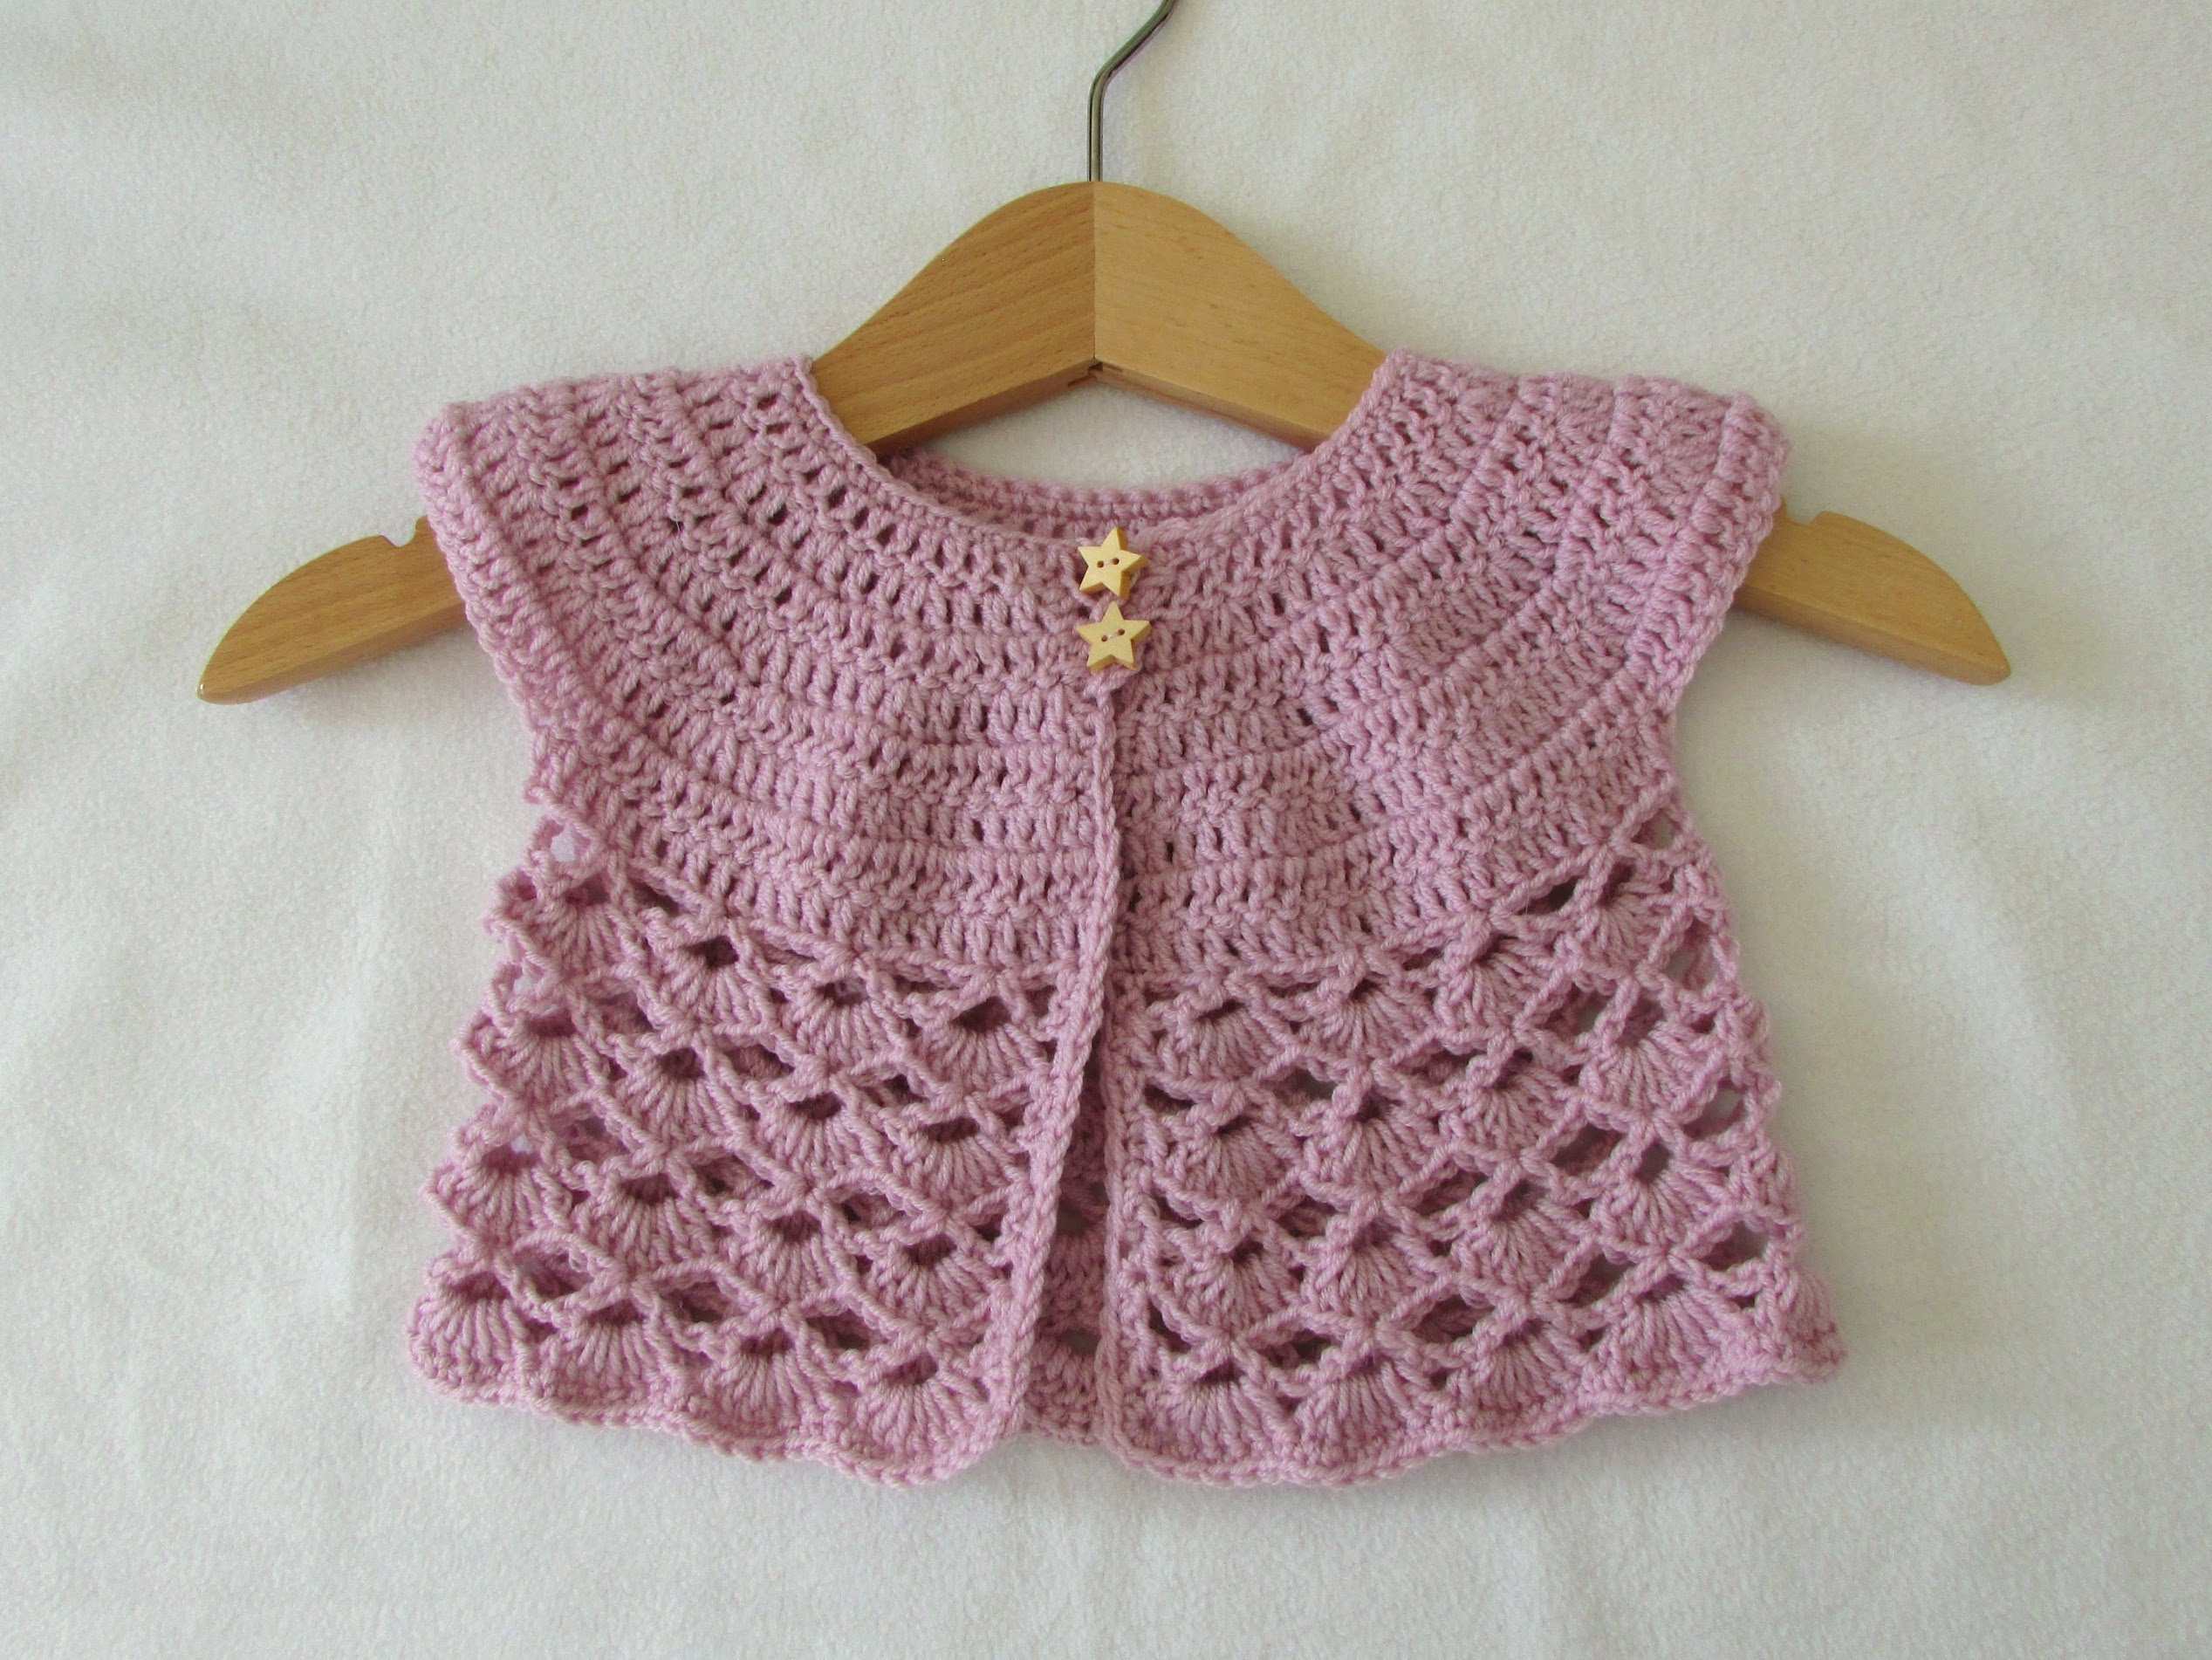 Free Crochet Patterns for Babies Cardigans Inspirational How to Crochet Baby Sweater Crochet and Knitting Of Superb 45 Models Free Crochet Patterns for Babies Cardigans